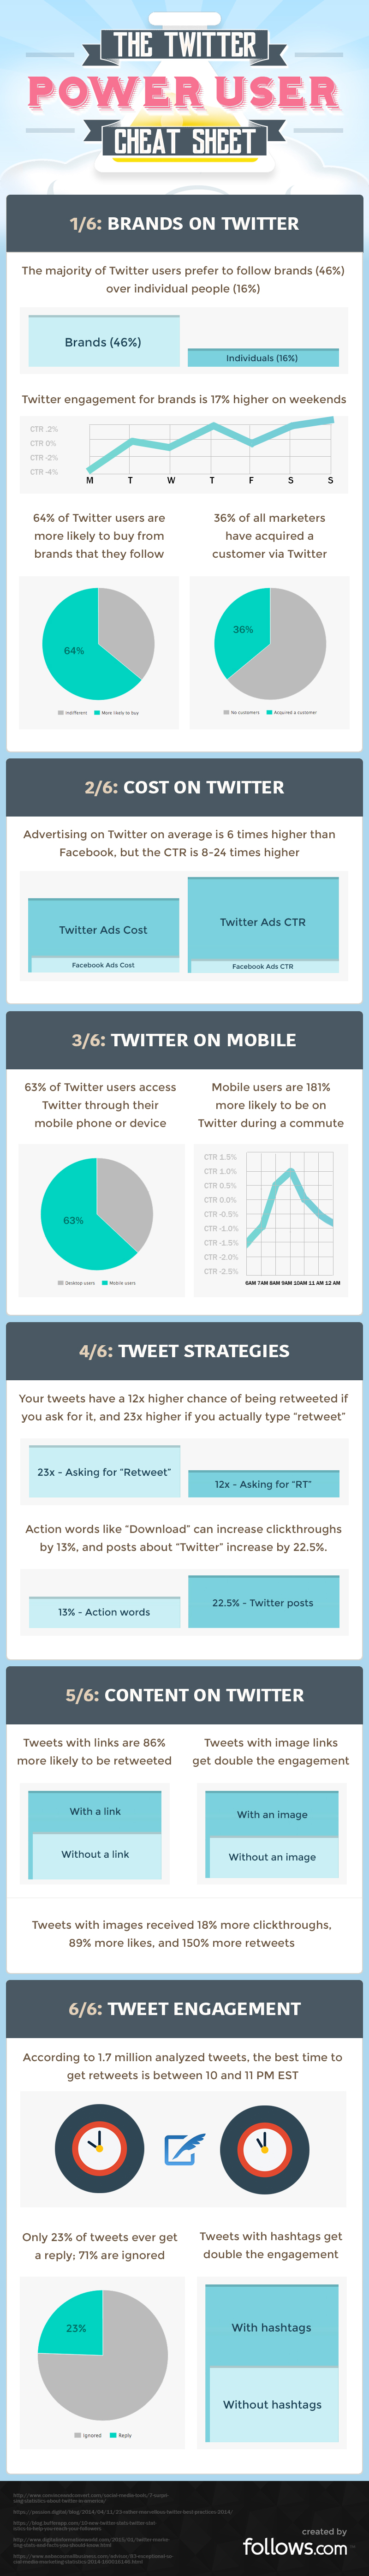 The Twitter Power User Cheat Sheet